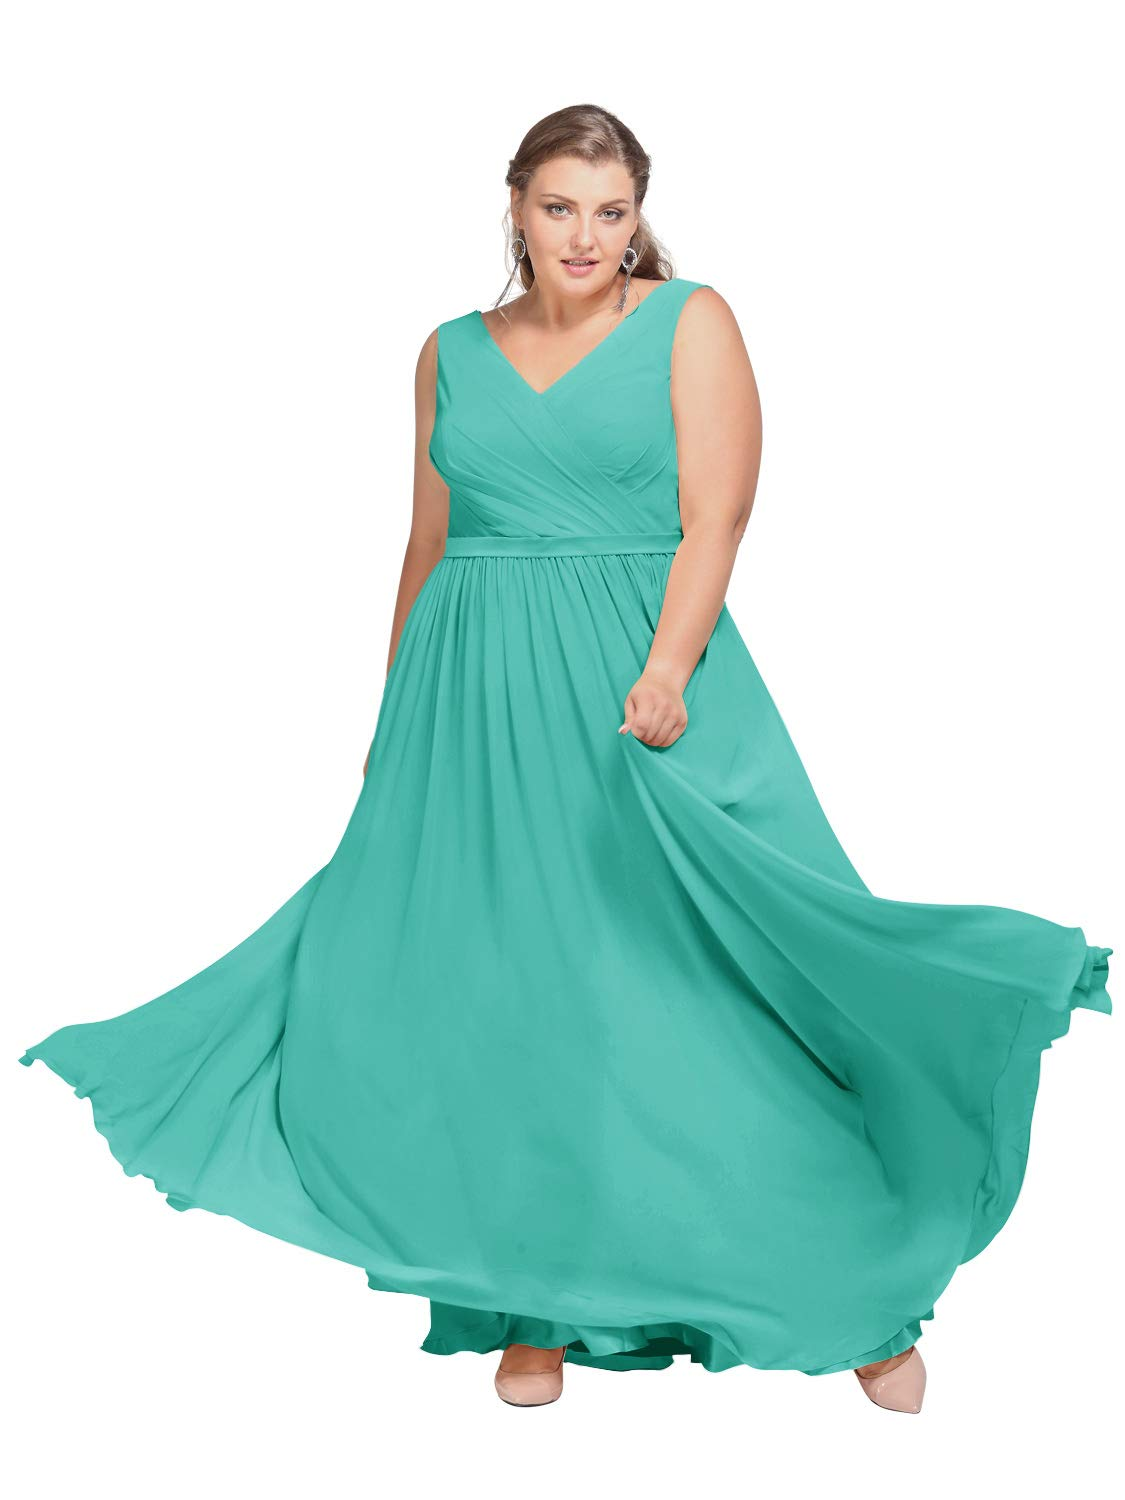 AW V-Neck Bridesmaid Dresses Chiffon Formal Prom Dresses Long Plus Size  Evening Gowns, Tiffany, US30